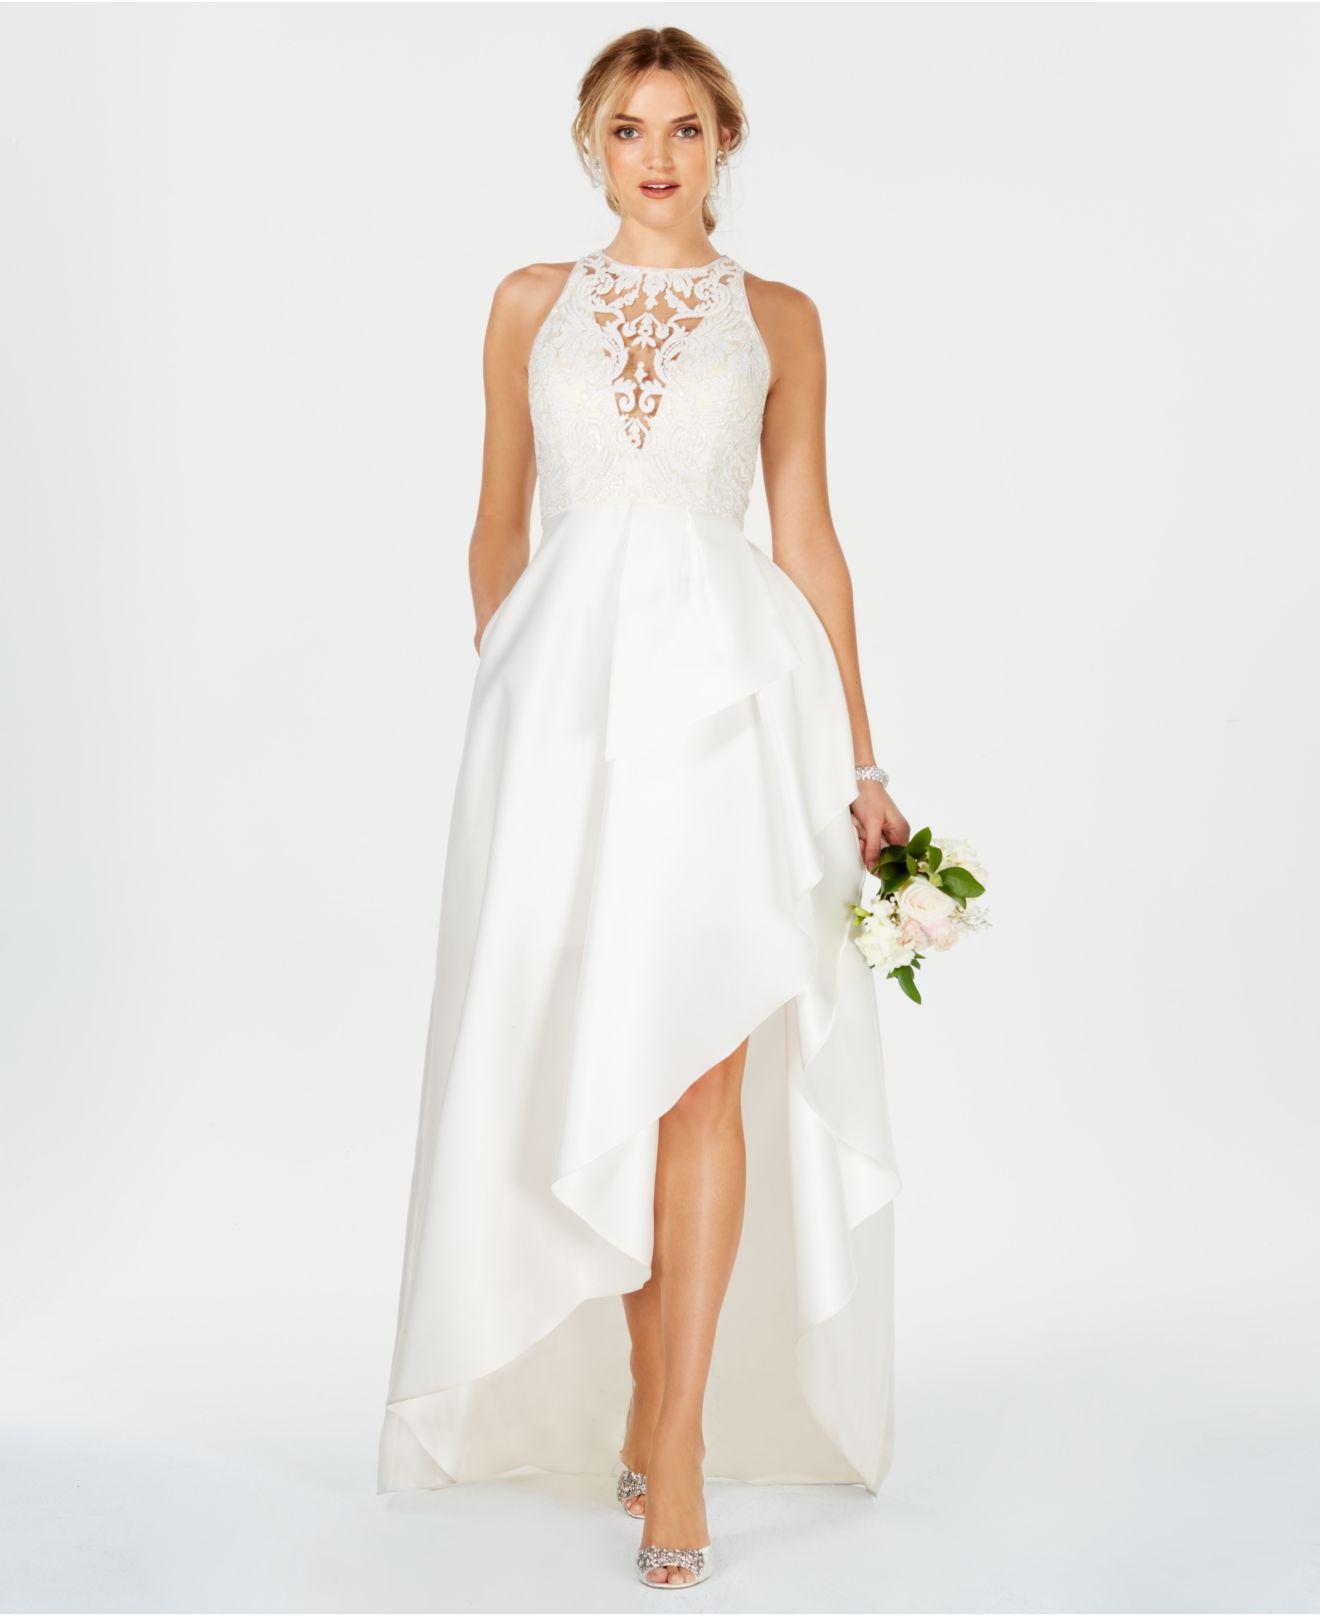 Lyst - Adrianna Papell Embroidered High-low Gown in White